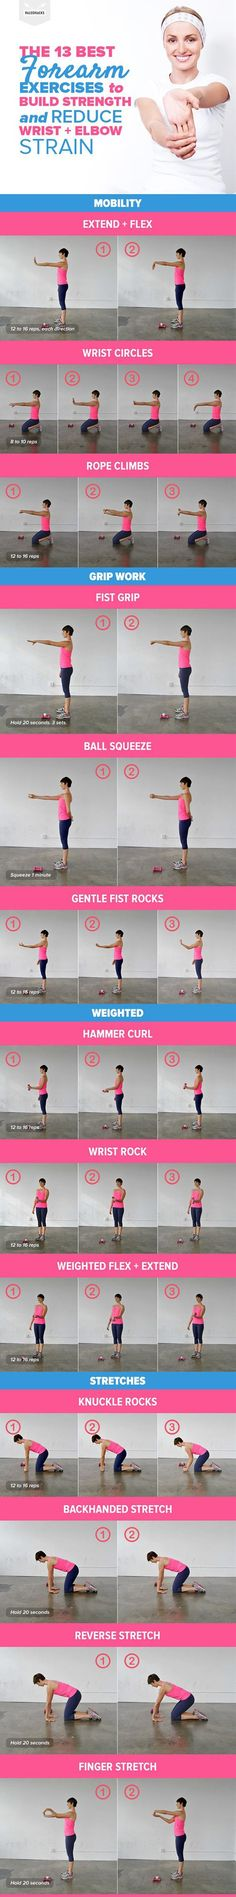 11 Easy Exercises To Help You Relieve Your Pain   Postris